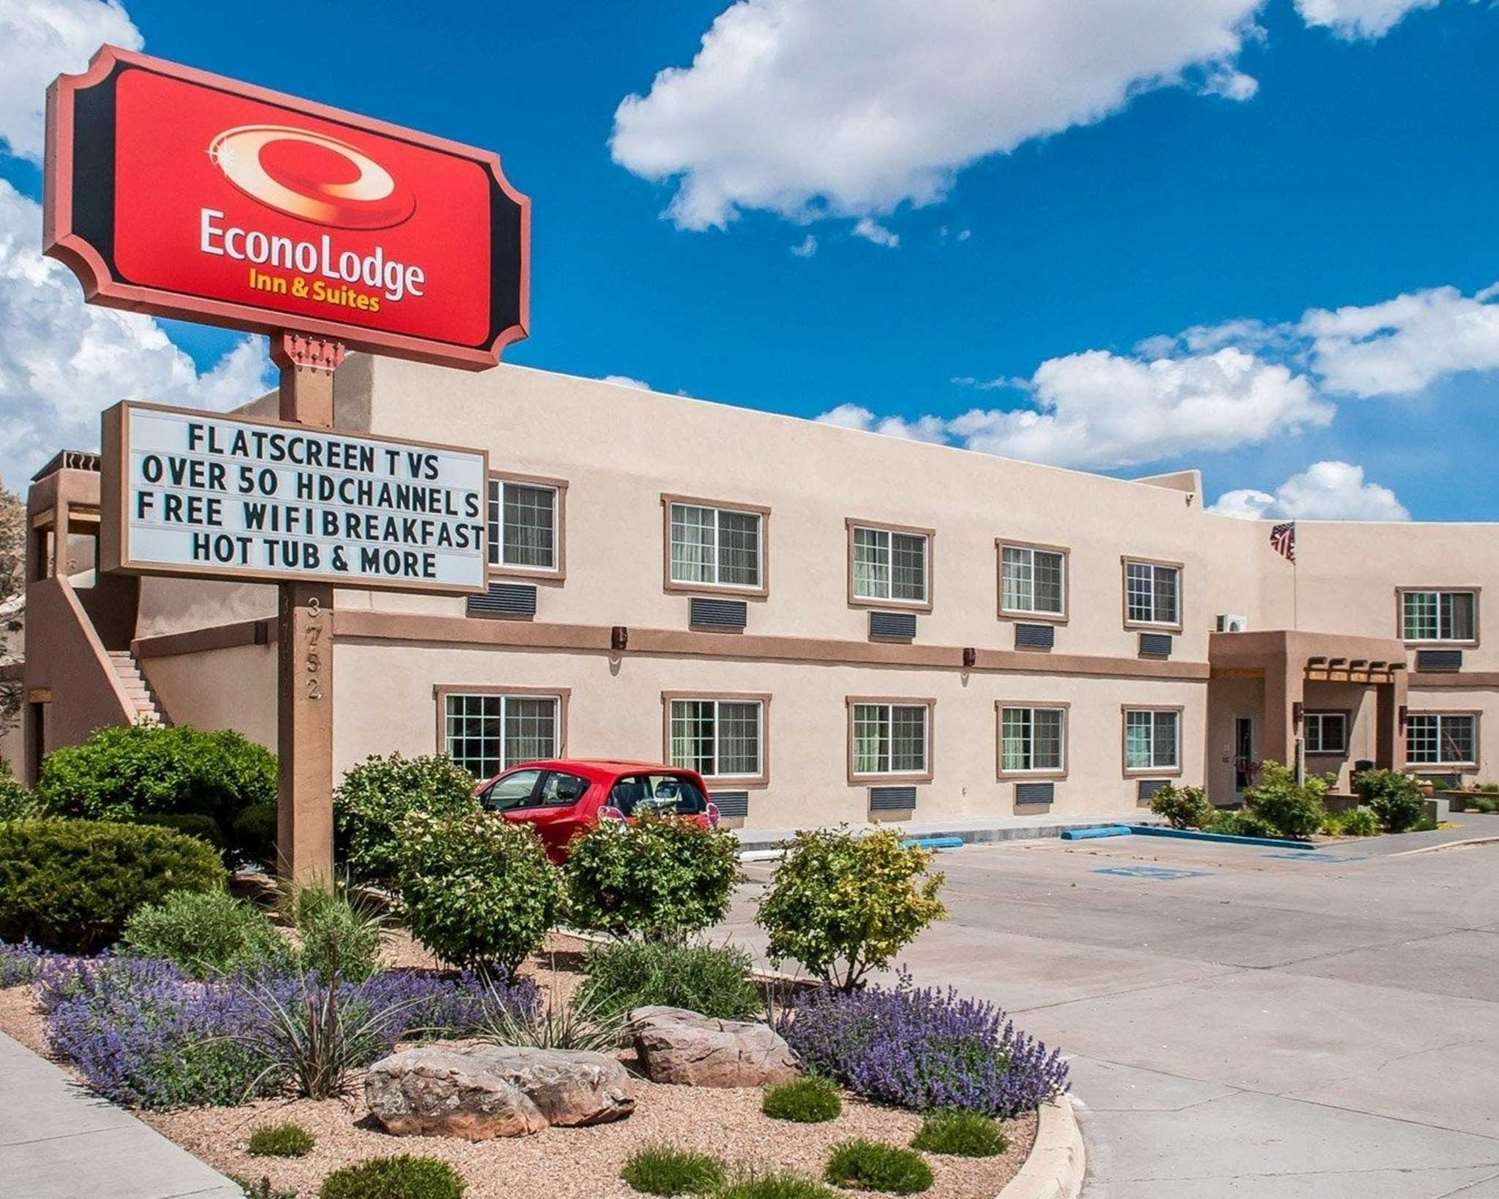 Exterior view - Econo Lodge Inn & Suites Santa Fe